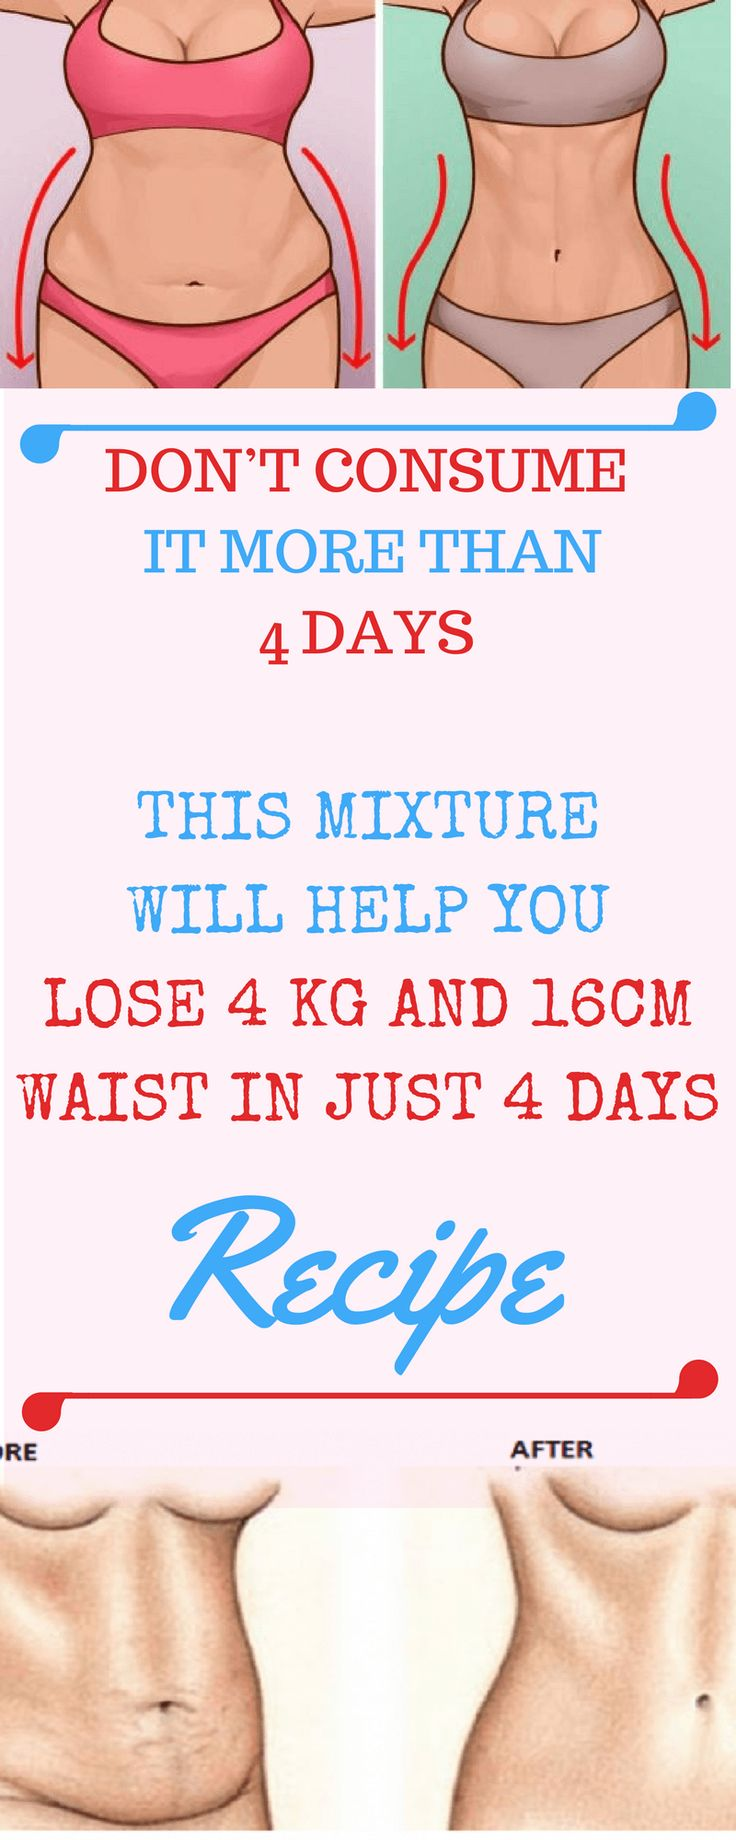 DON'T CONSUME IT MORE THAN 4 DAYS THIS MIXTURE WILL HELP YOU LOSE 4 KG AND 16CM WAIST IN JUST 4 DAYS- RECIPE